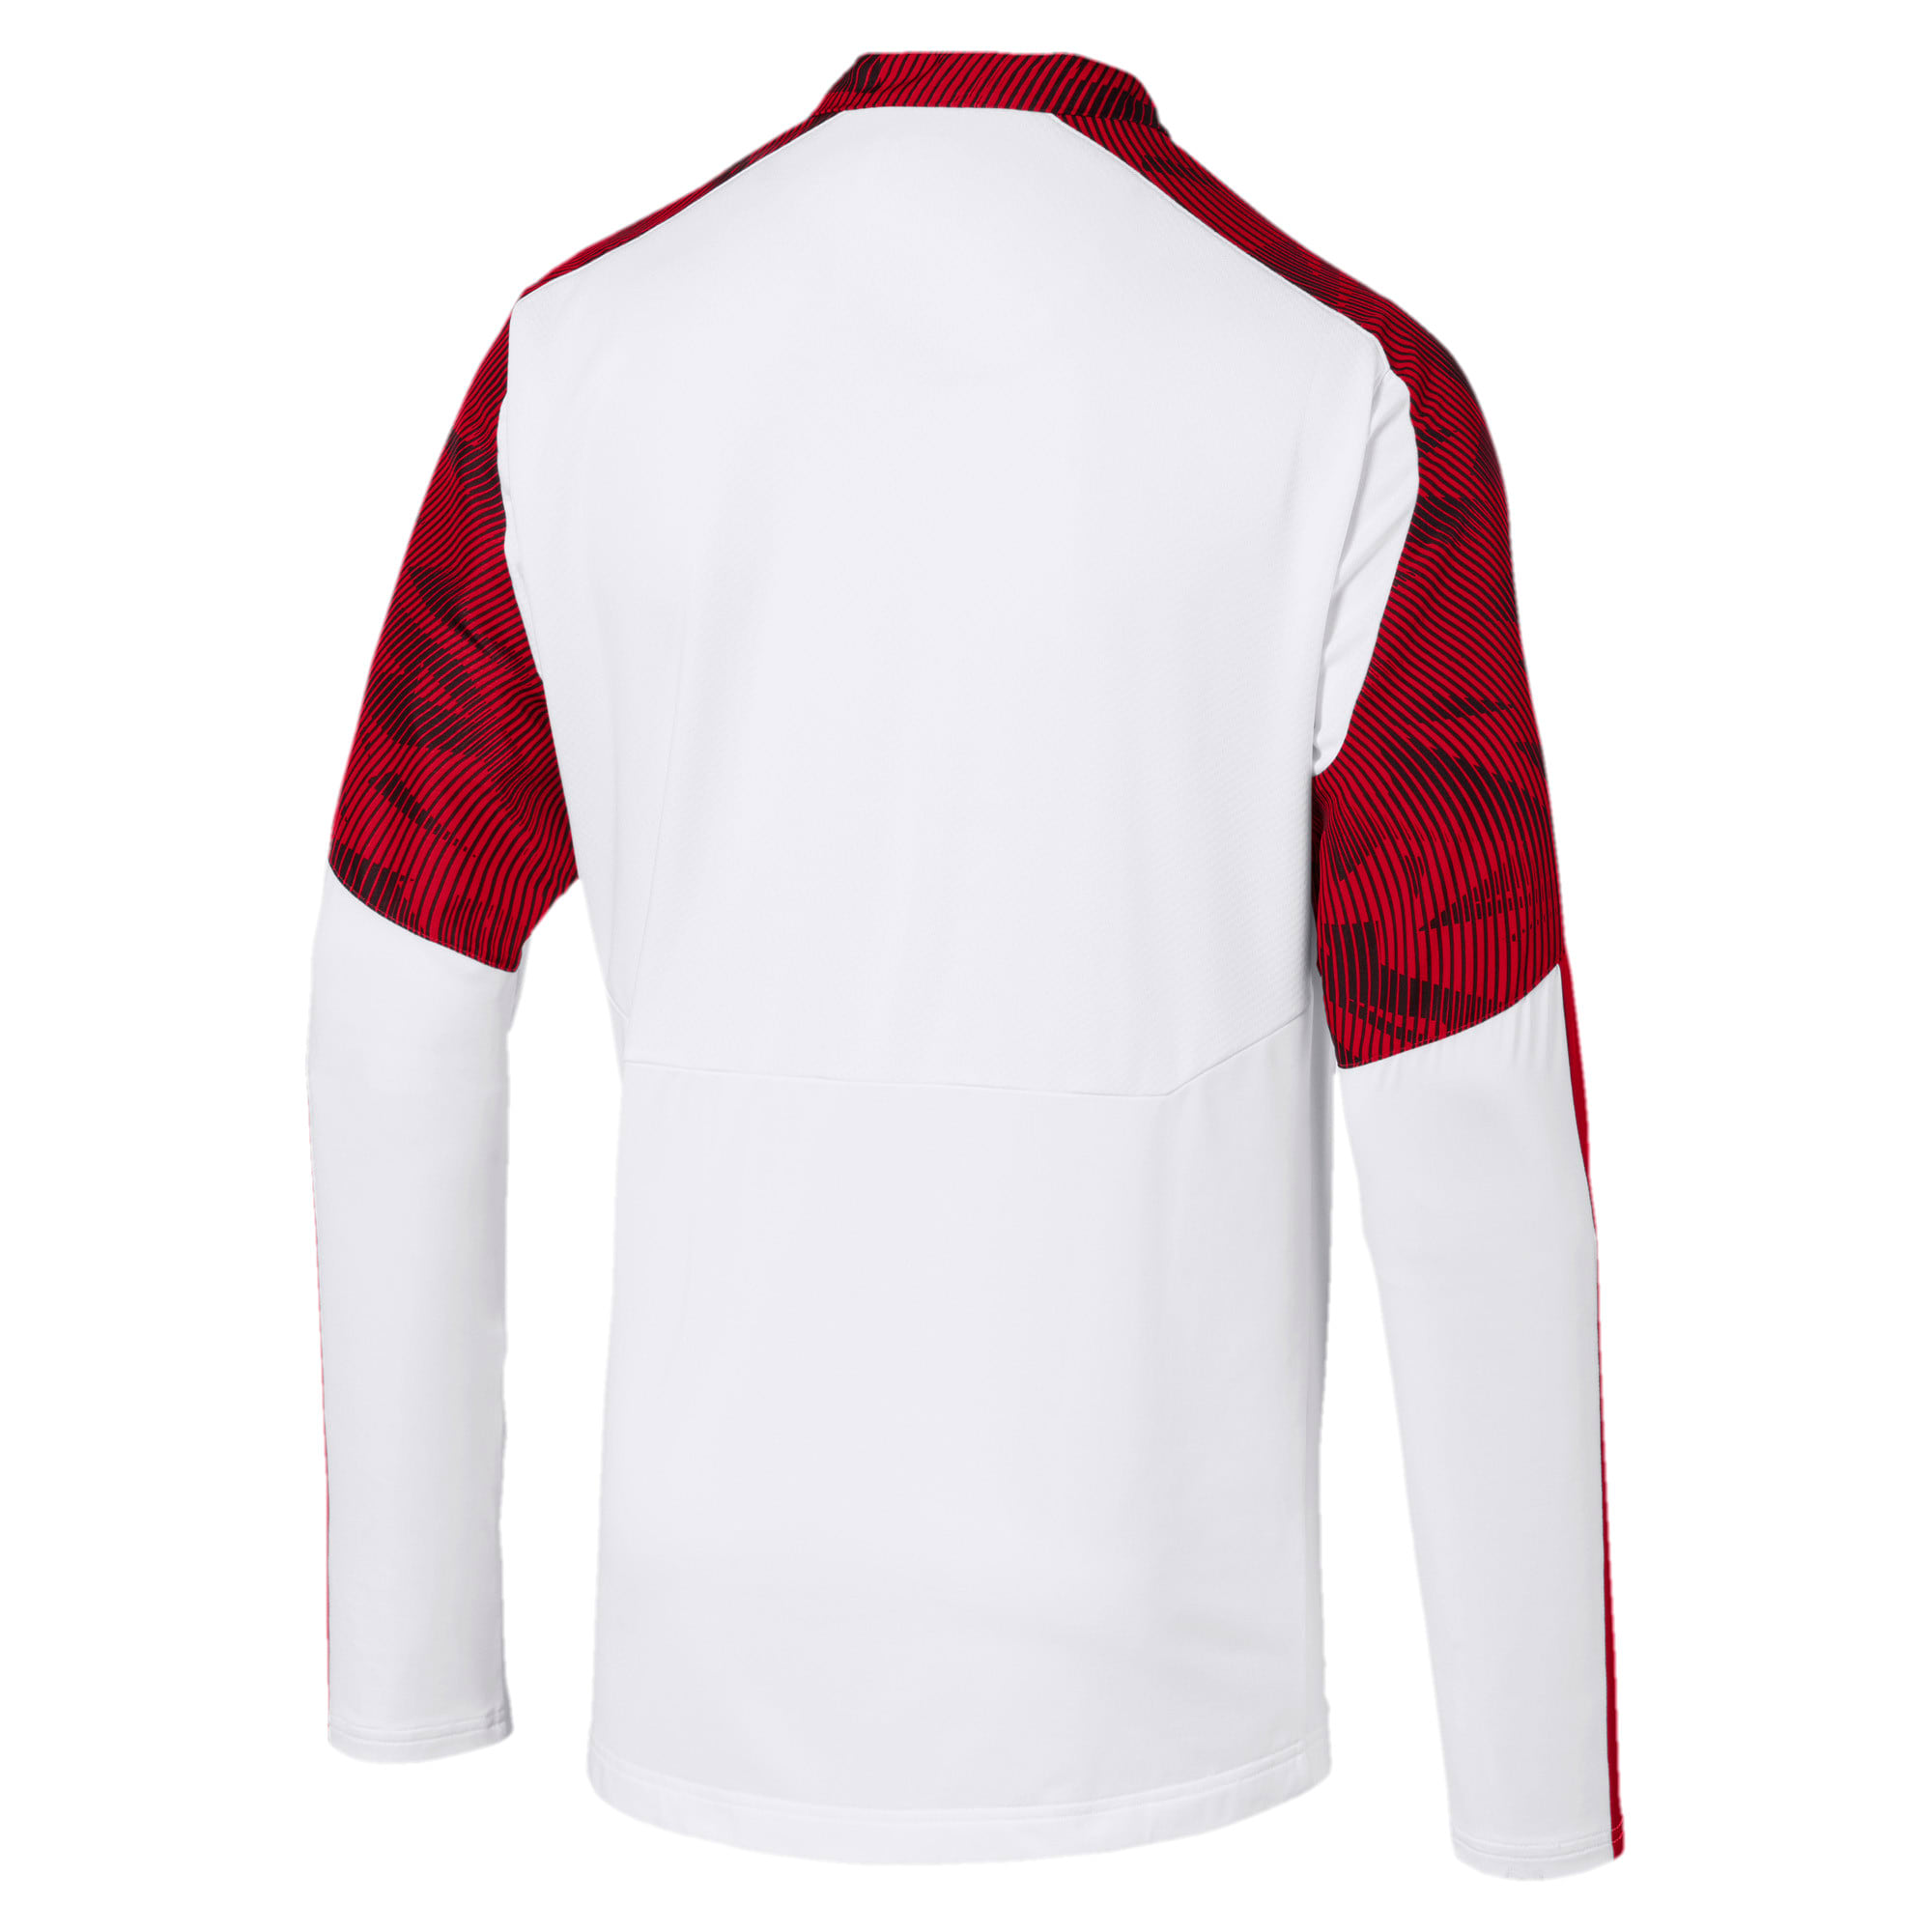 Thumbnail 5 of AC Milan Men's 1/4 Zip Top, Puma White-Tango Red, medium